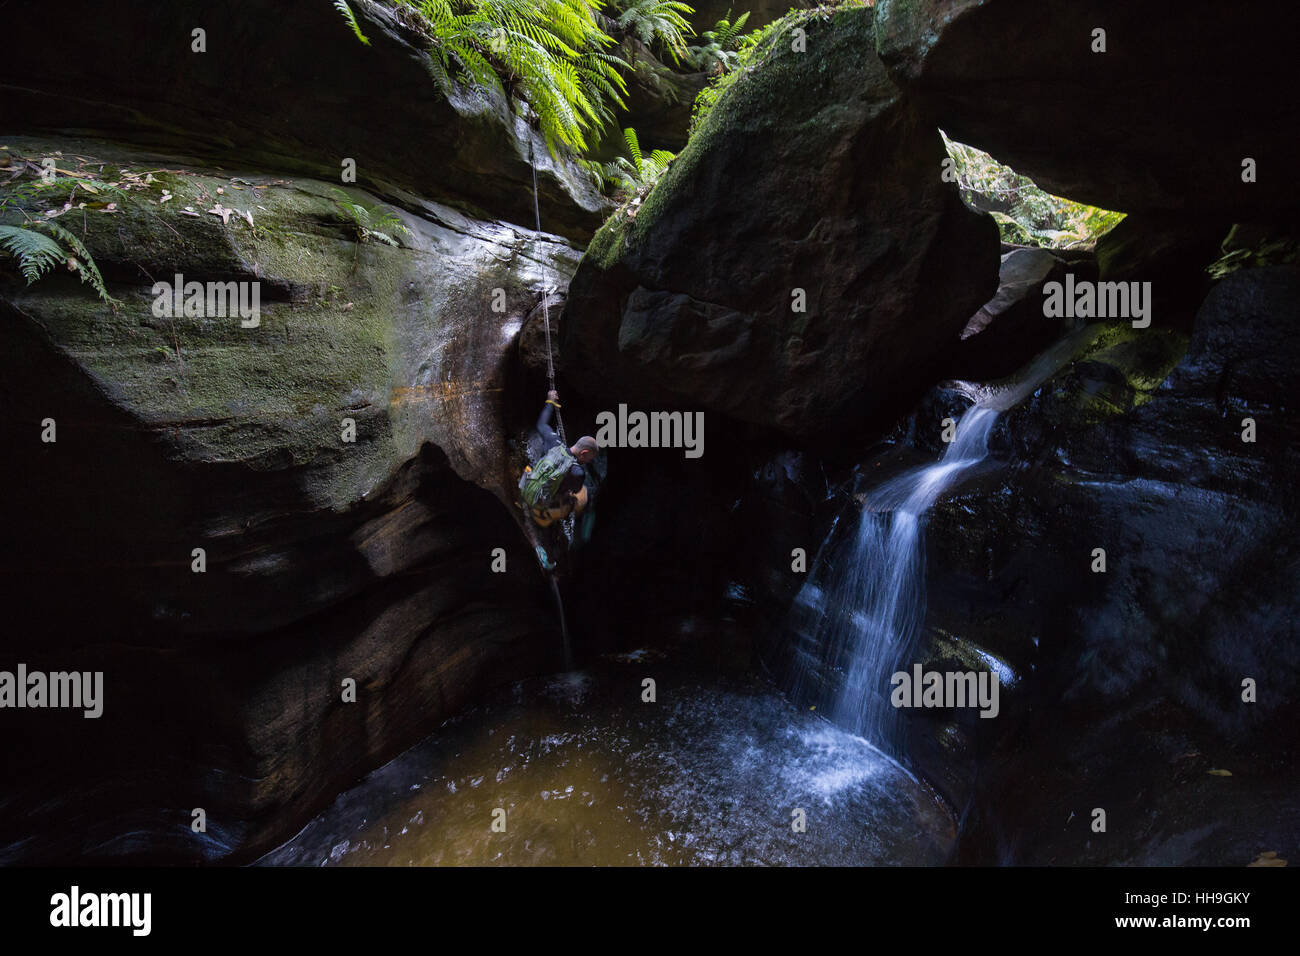 Adventure canyoning in claustral canyon in the Blue Mountains, Australia - Stock Image